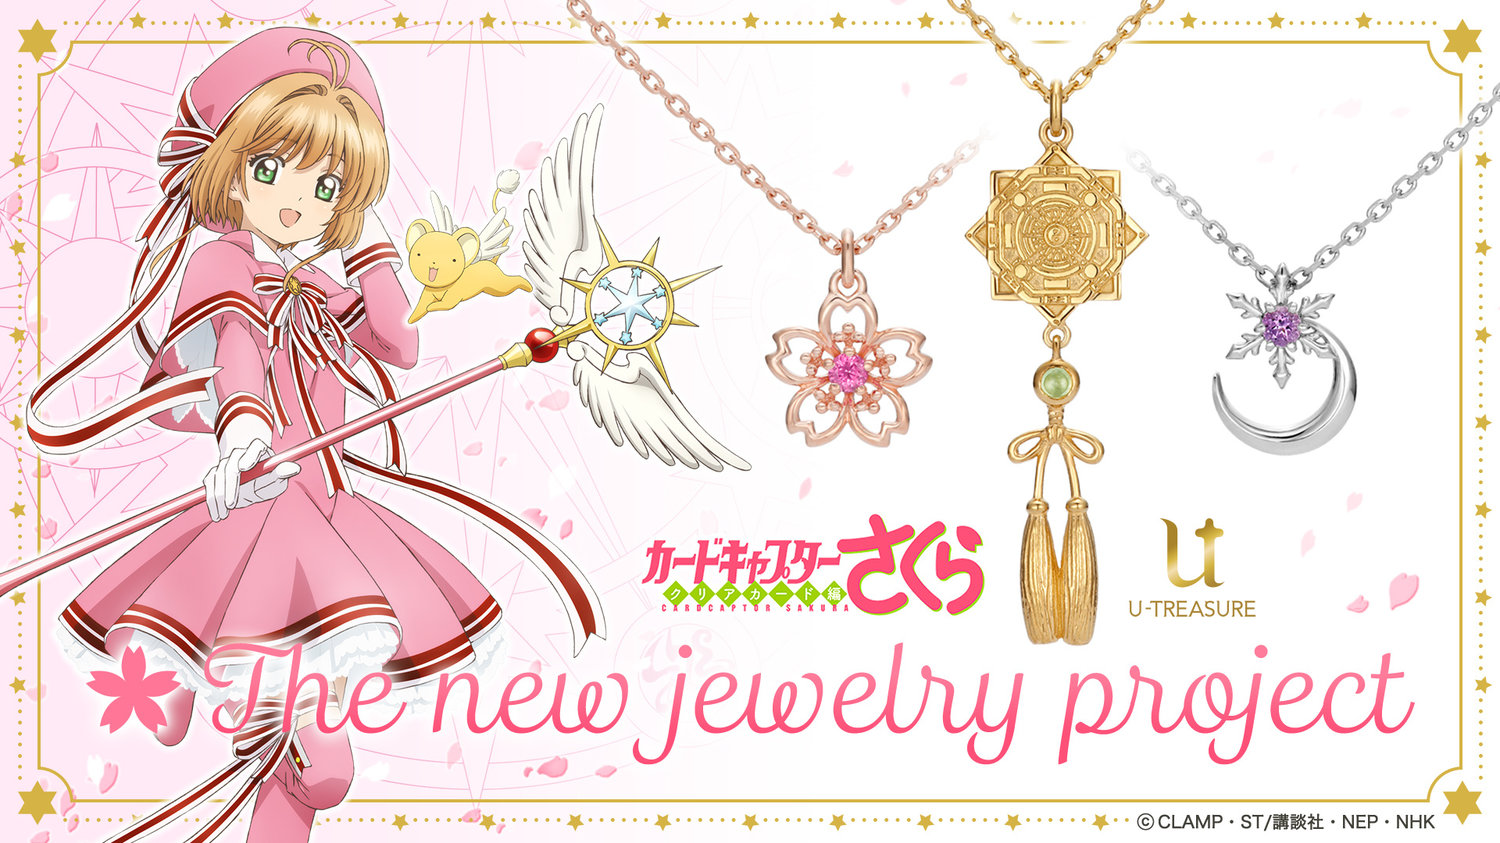 Cardcaptor Sakura Silver Necklace